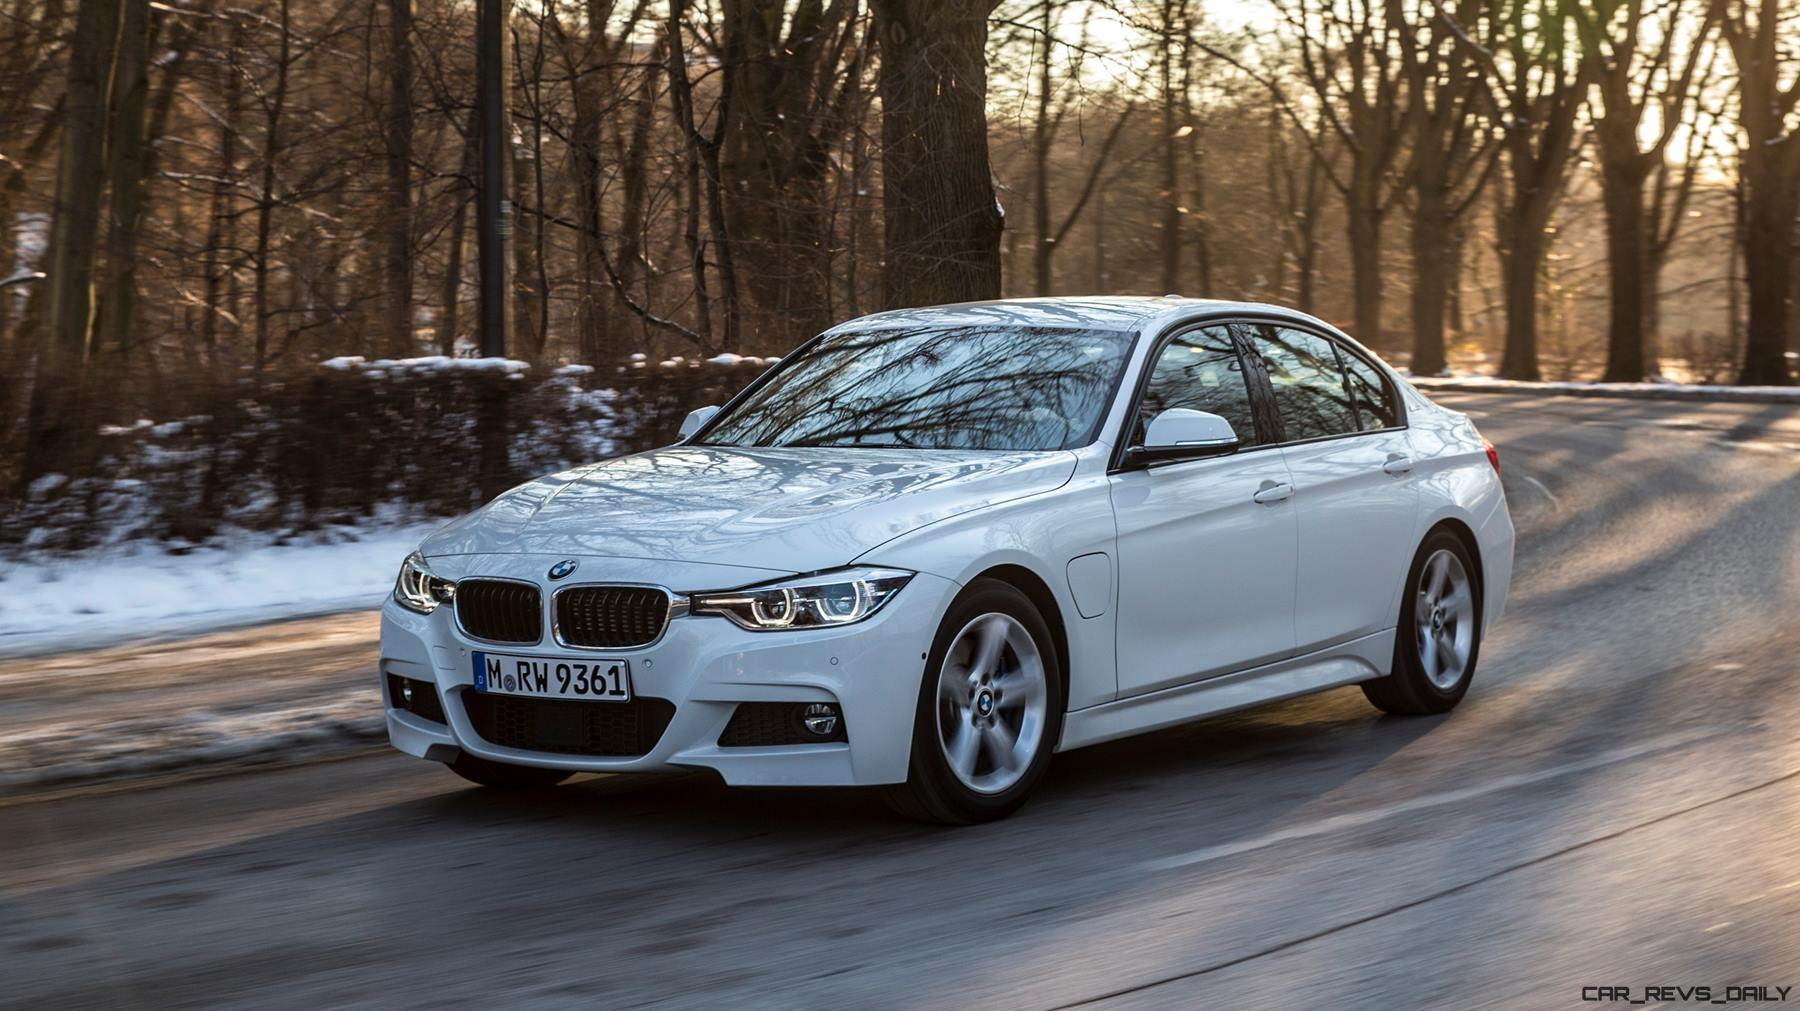 Bmw 330e Review Uk Bmw 330e 2017 Car Review 2017 Bmw 330e Driving Review